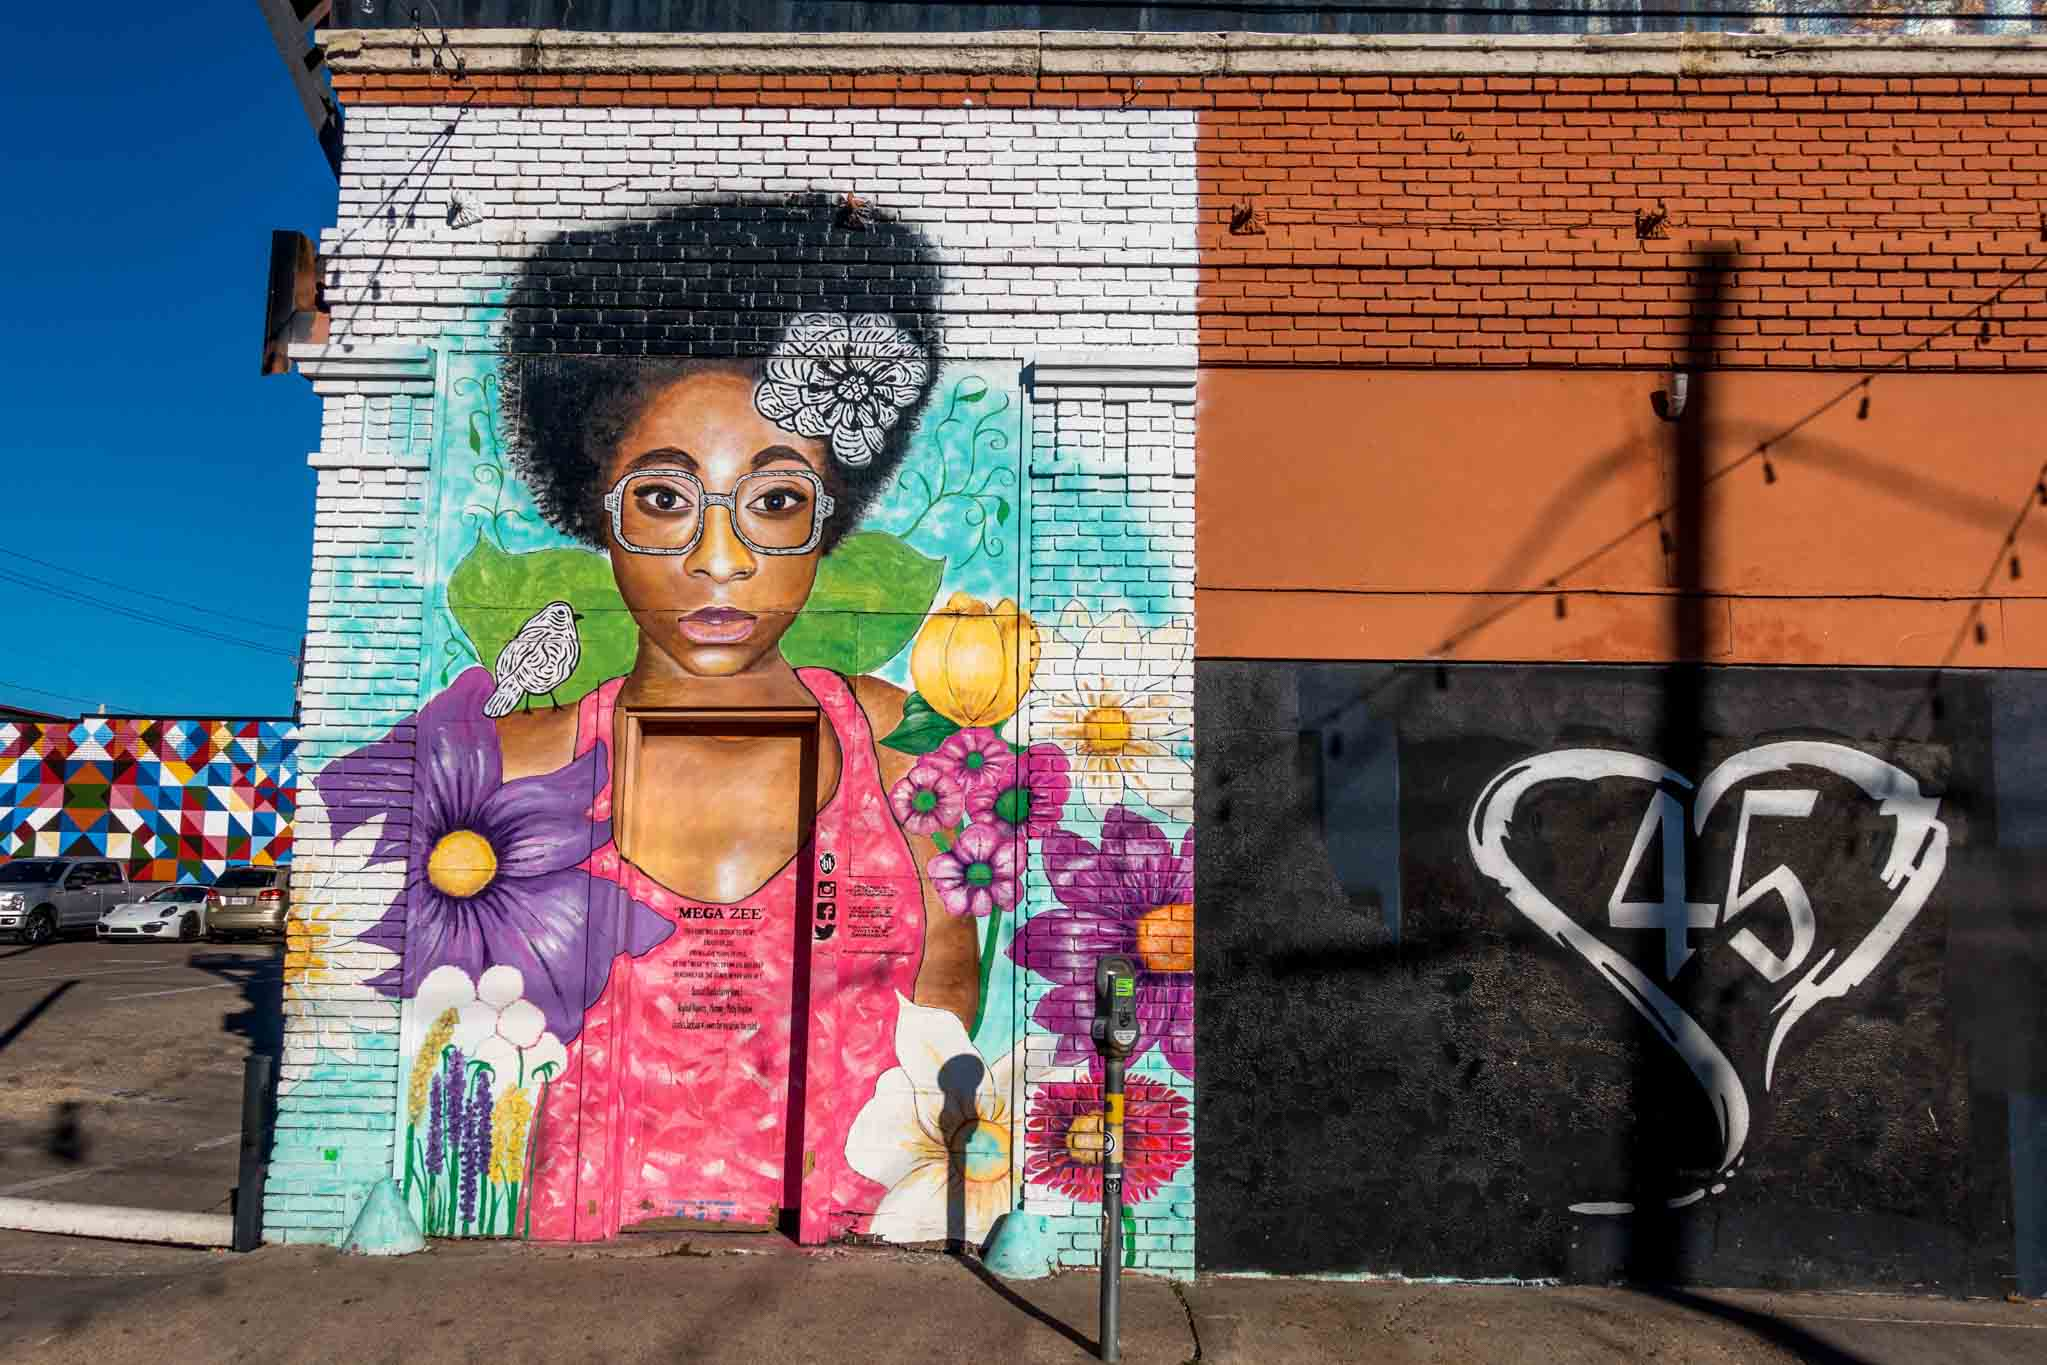 Street art in Deep Ellum showing woman with bright flowers